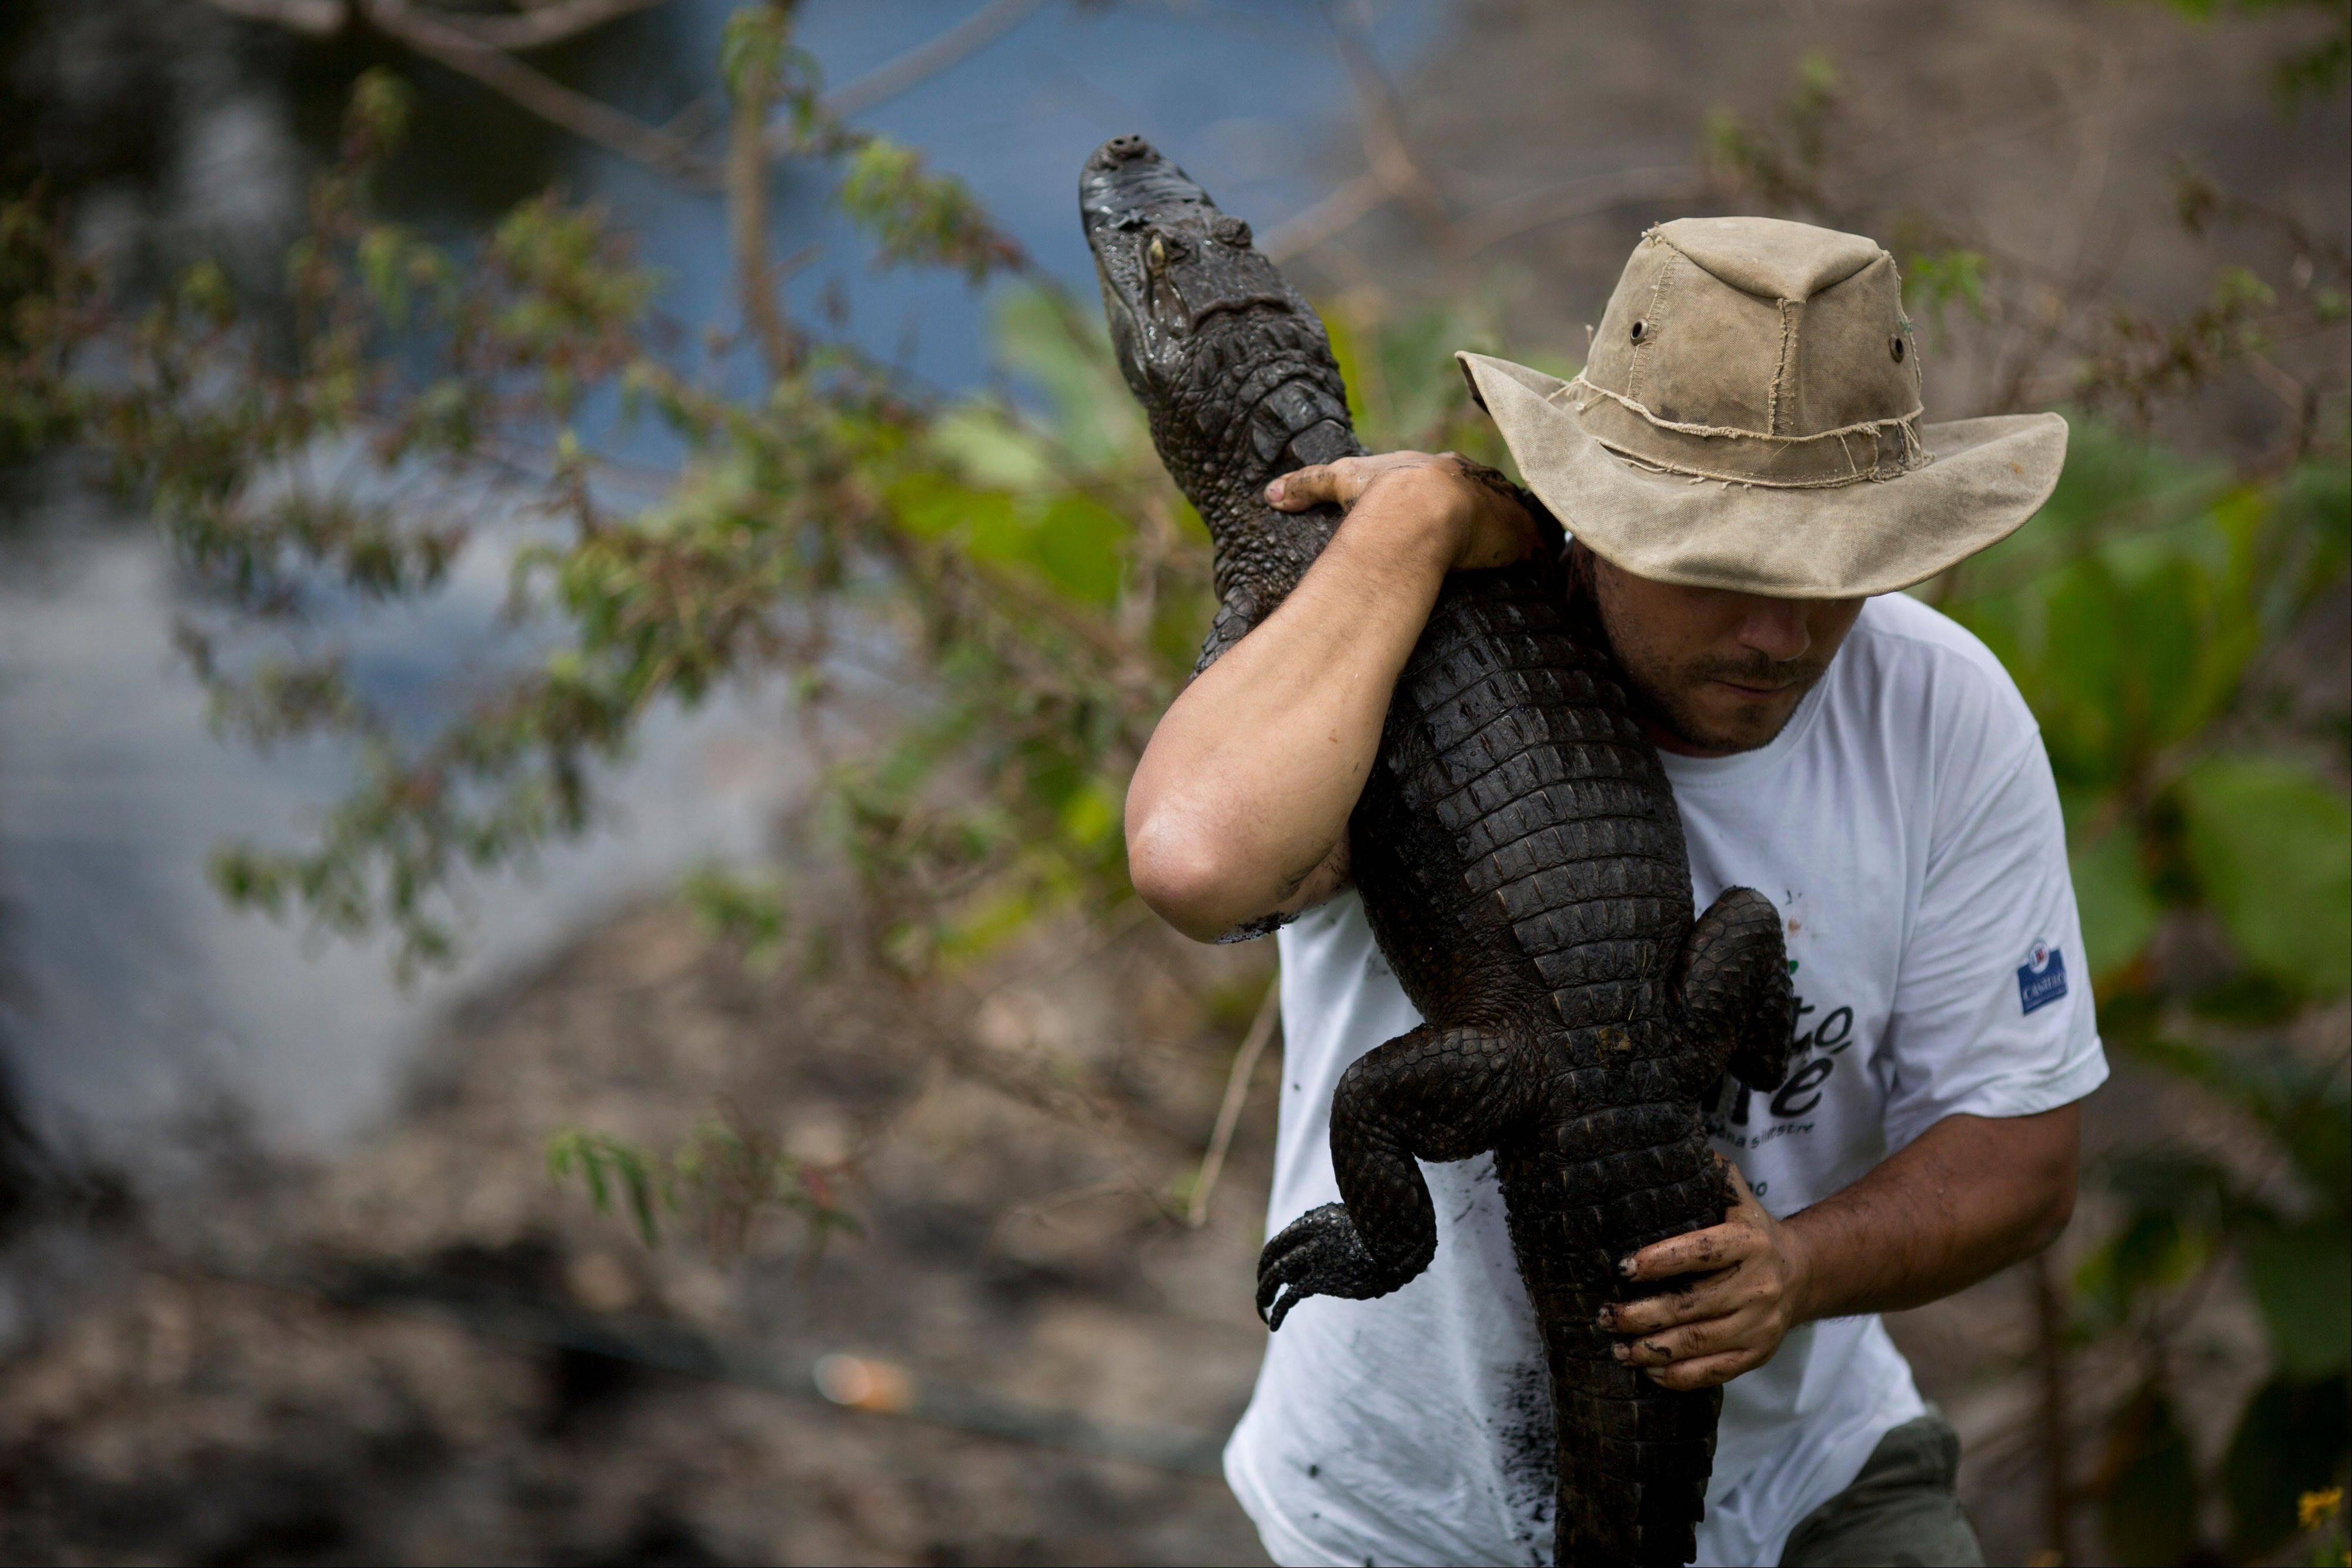 Ecology professor Ricardo Freitas holds onto to a broad-snouted caiman he caught to examine, then release back into the water channel in the affluent Recreio dos Bandeirantes suburb of Rio de Janeiro, Brazil. With a population that�s 85 percent male, a serious demographic problem is looming for Rio�s caimans, said Freitas, who suspects that the uncontrolled release of raw sewage is behind the gender imbalance. Organic matter raises water warmer and among caimans, high temperatures during a certain stage of incubation result in male offspring.